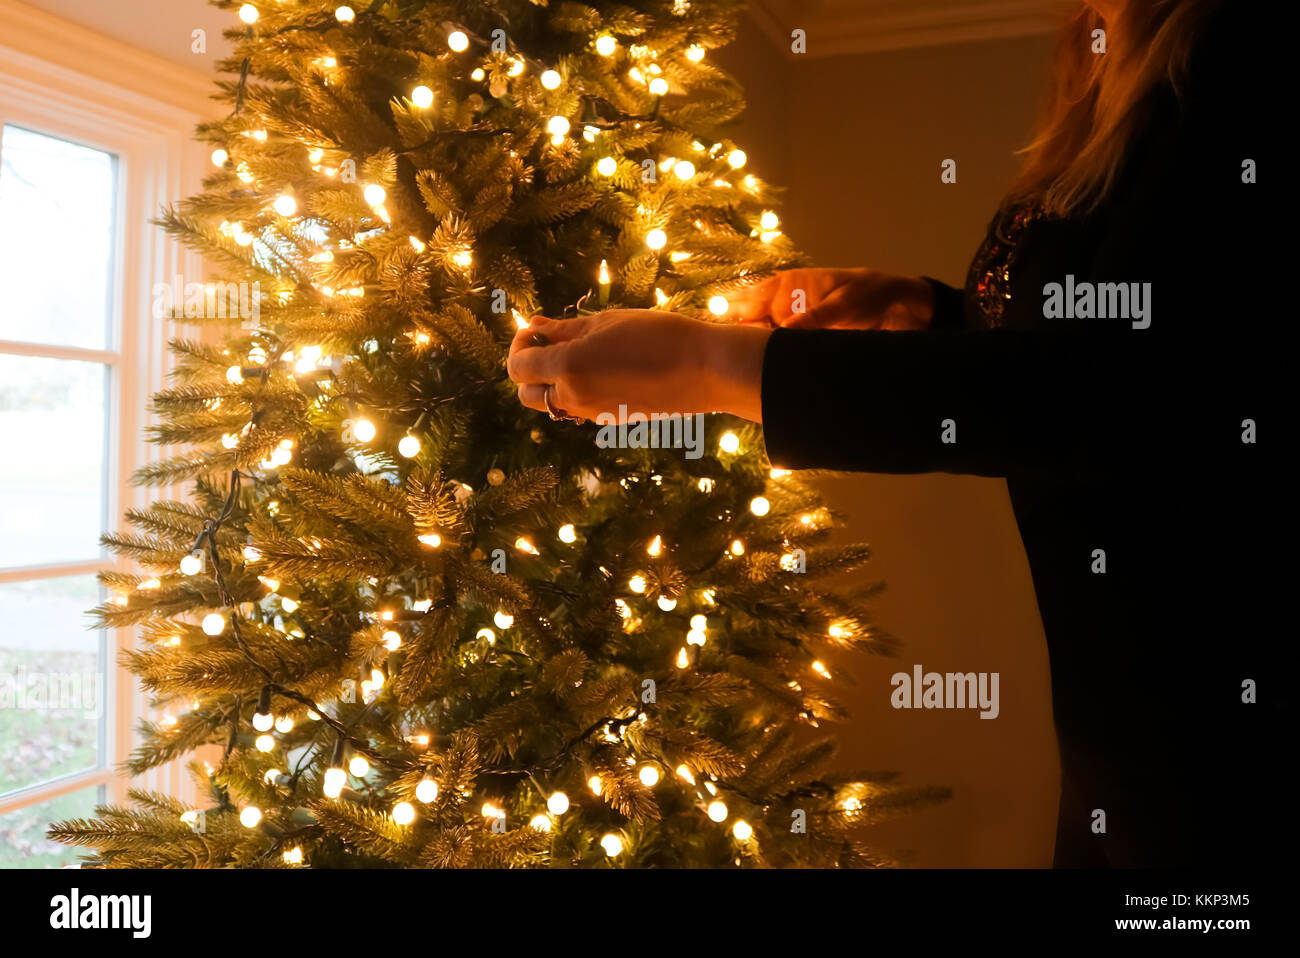 Woman Dressed In Black Decorating Christmas Tree With Lights By Bay